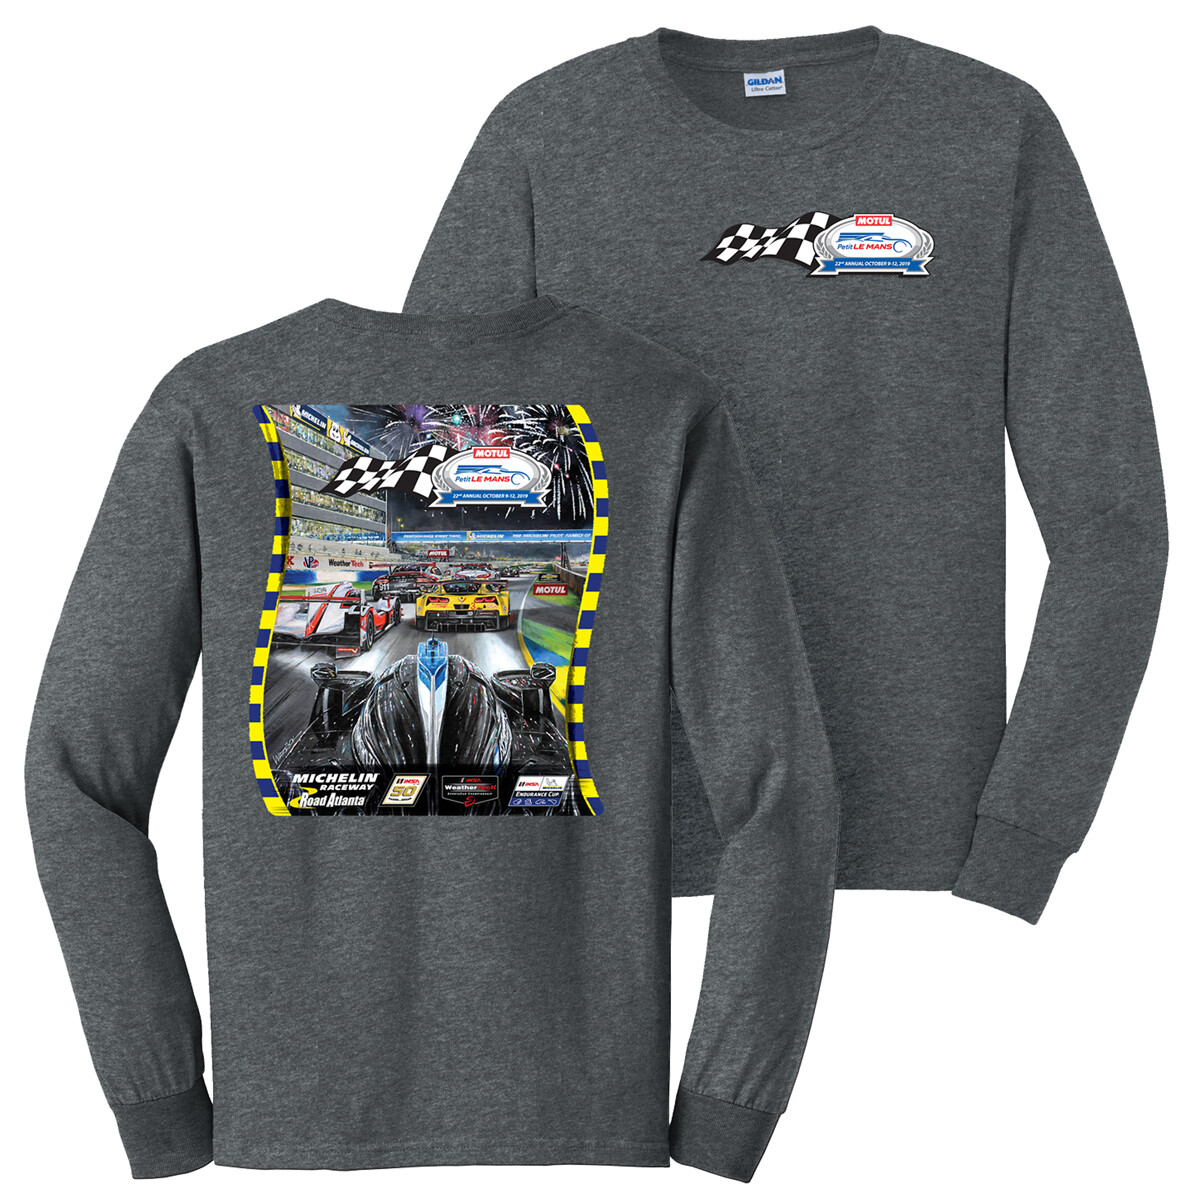 2019 Motul Petit Le Mans Long Sleeve Poster Tee - Dark Heather